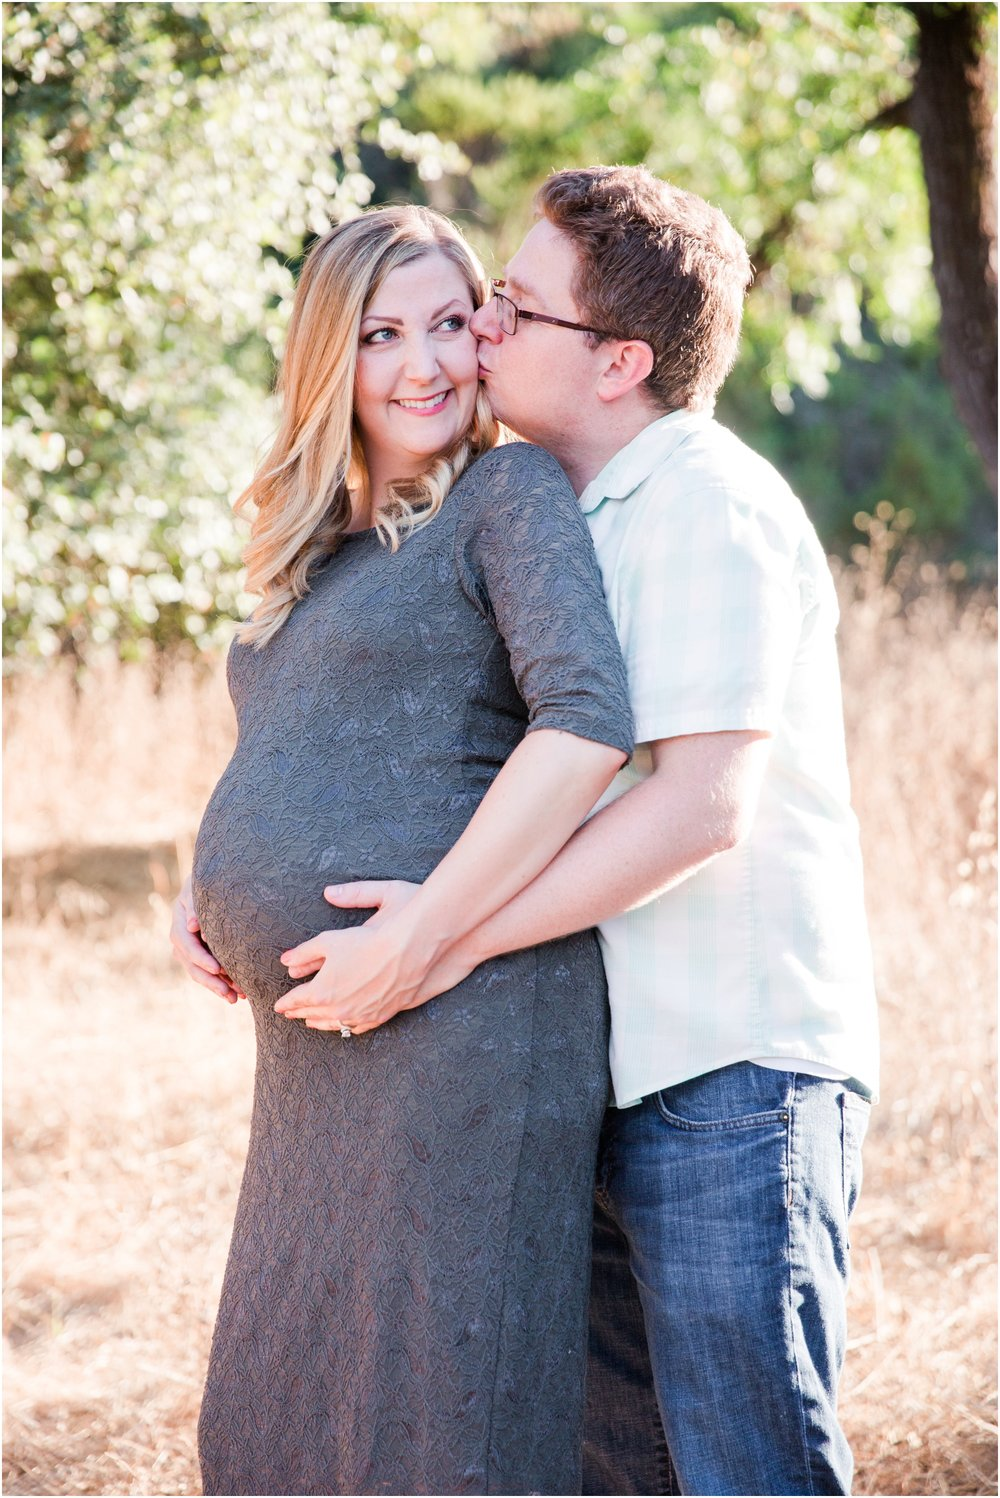 Picchetti Winery maternity pictures by Briana Calderon Photography_2366.jpg